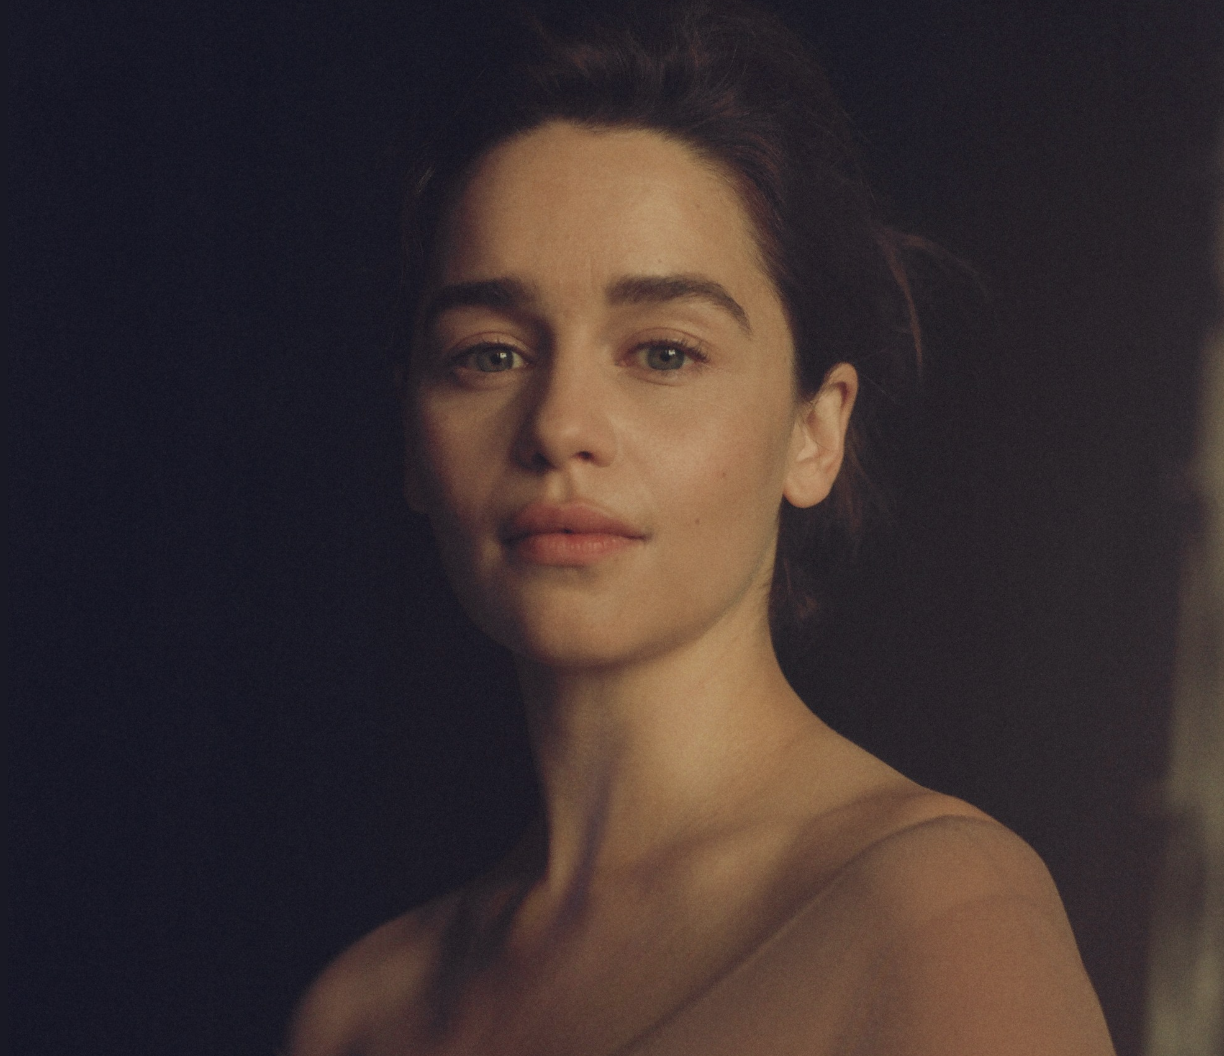 The Battle for my Life - Game of Thrones actor Emilia Clarke writes in the New Yorker about her experience with a ruptured brain aneurysm and three brain surgeries by the time she was 25